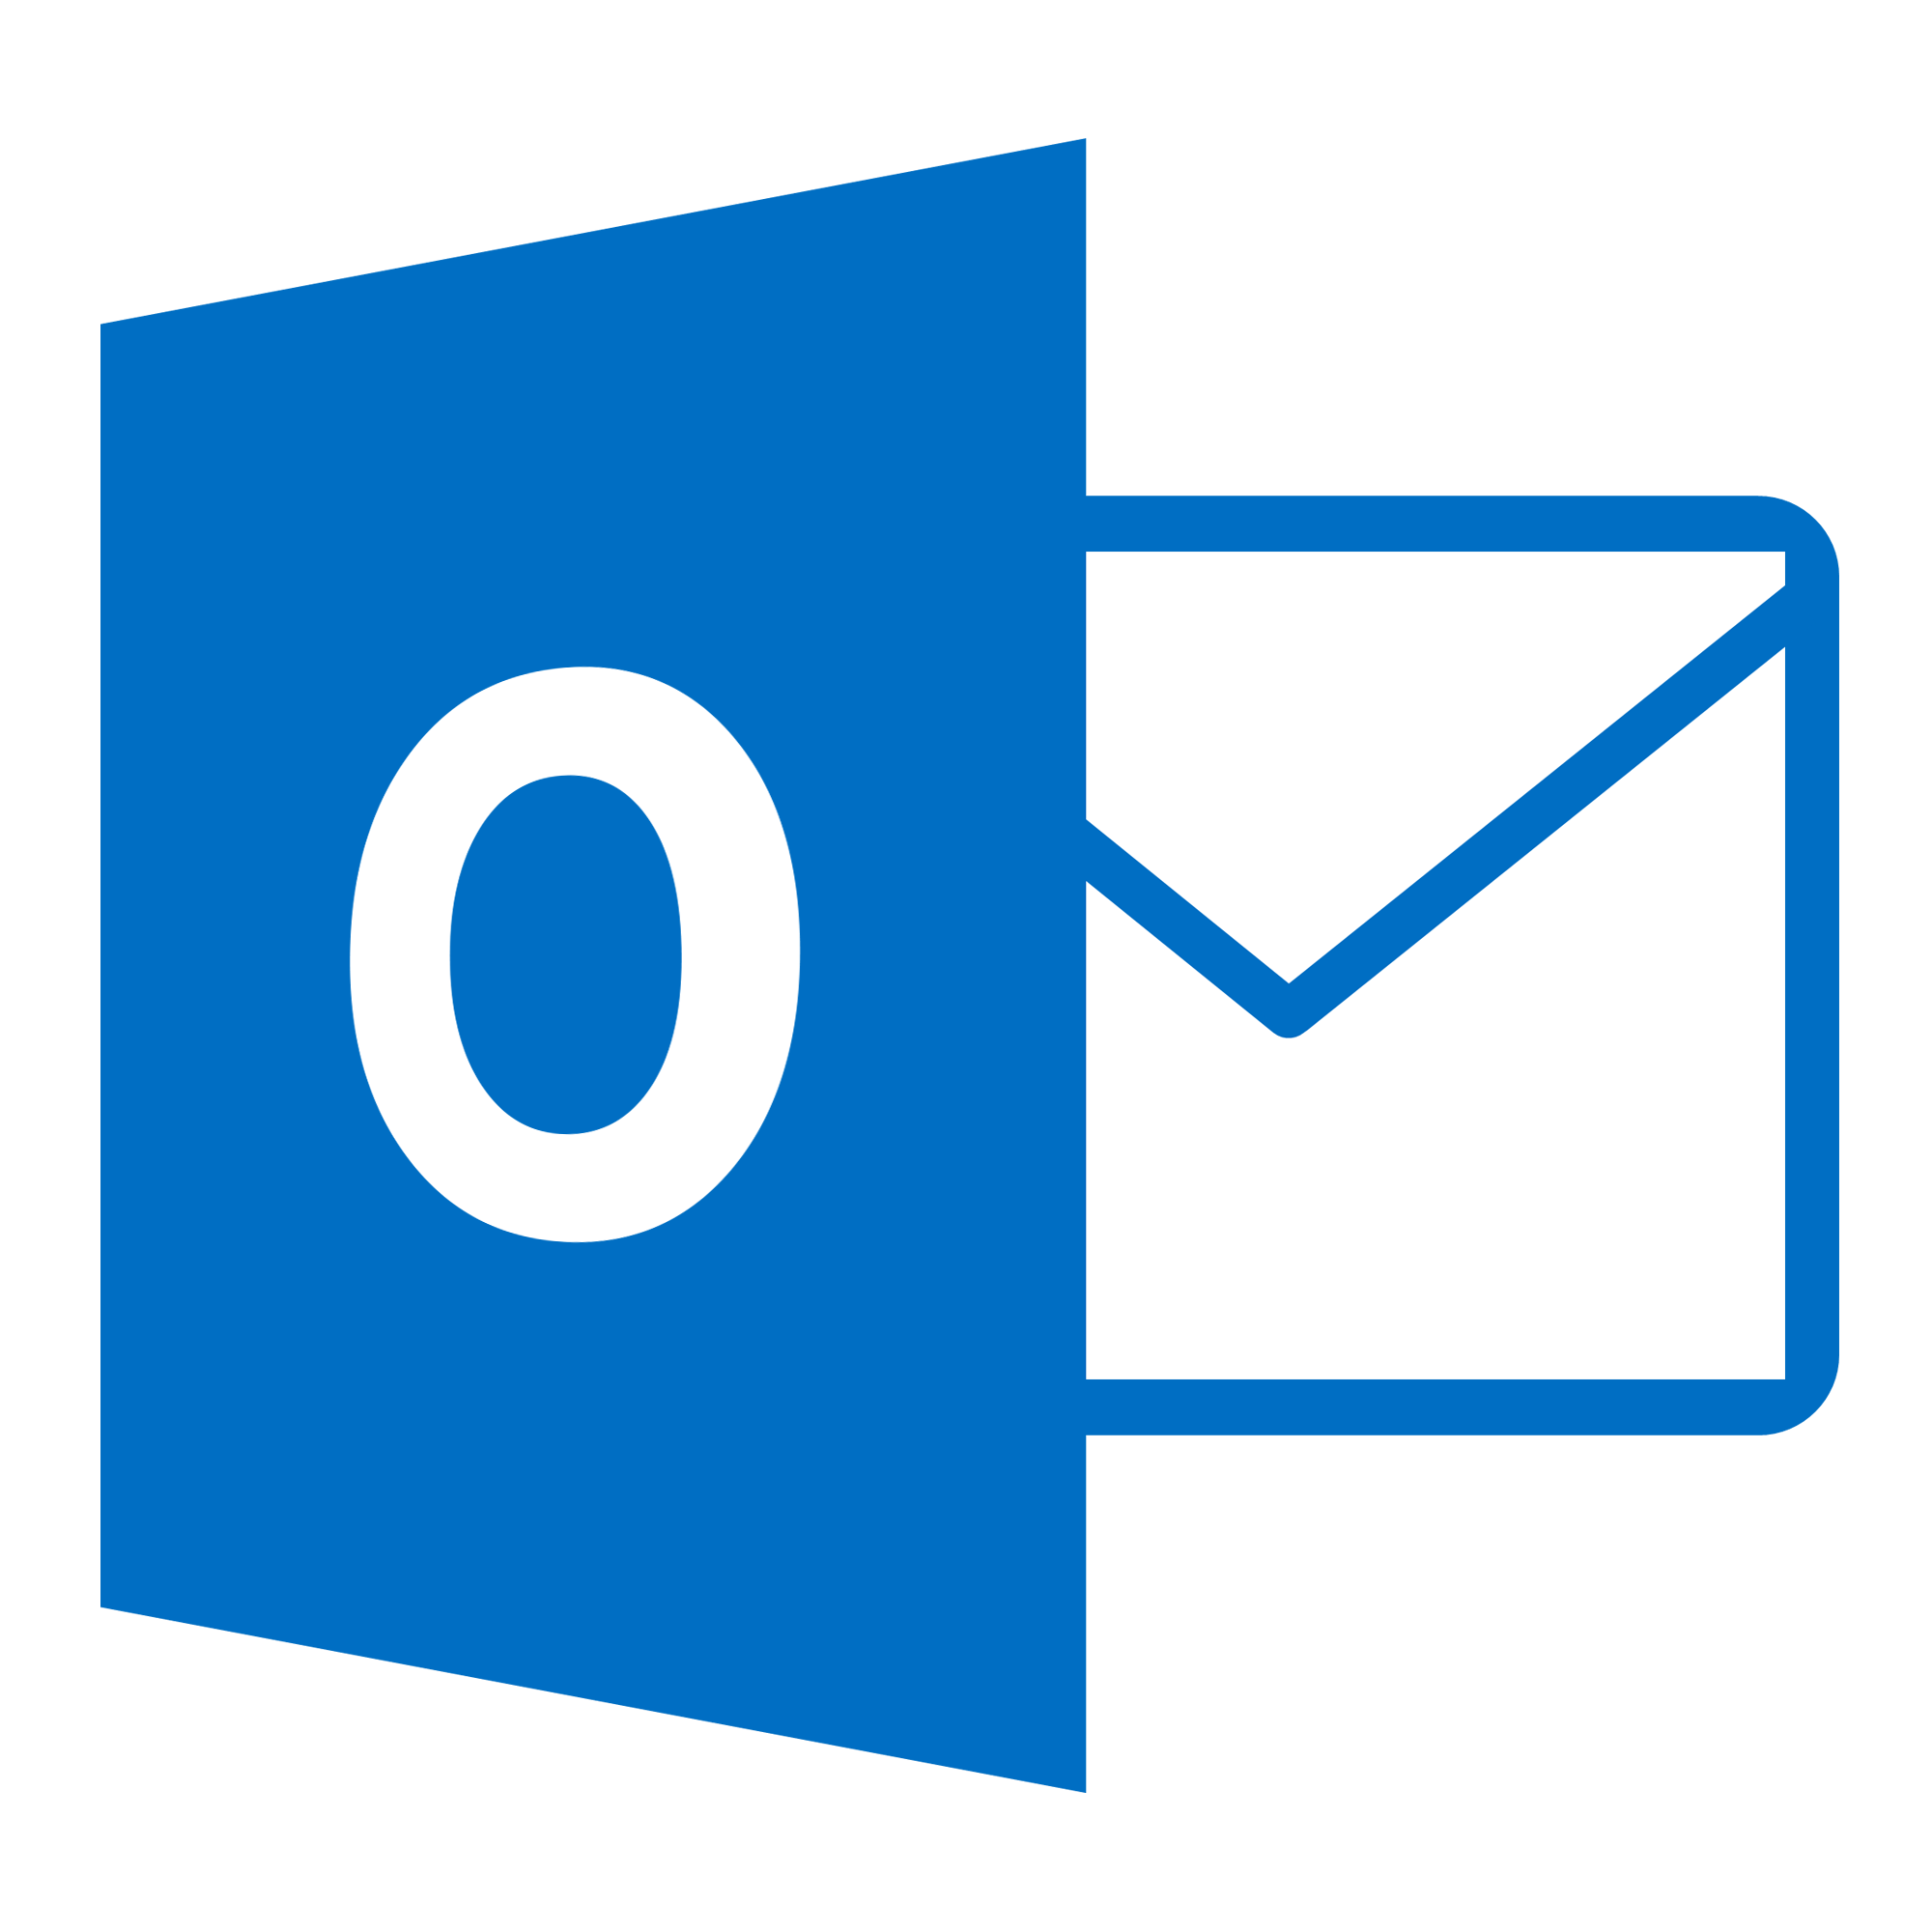 Outlook 2013 Icon